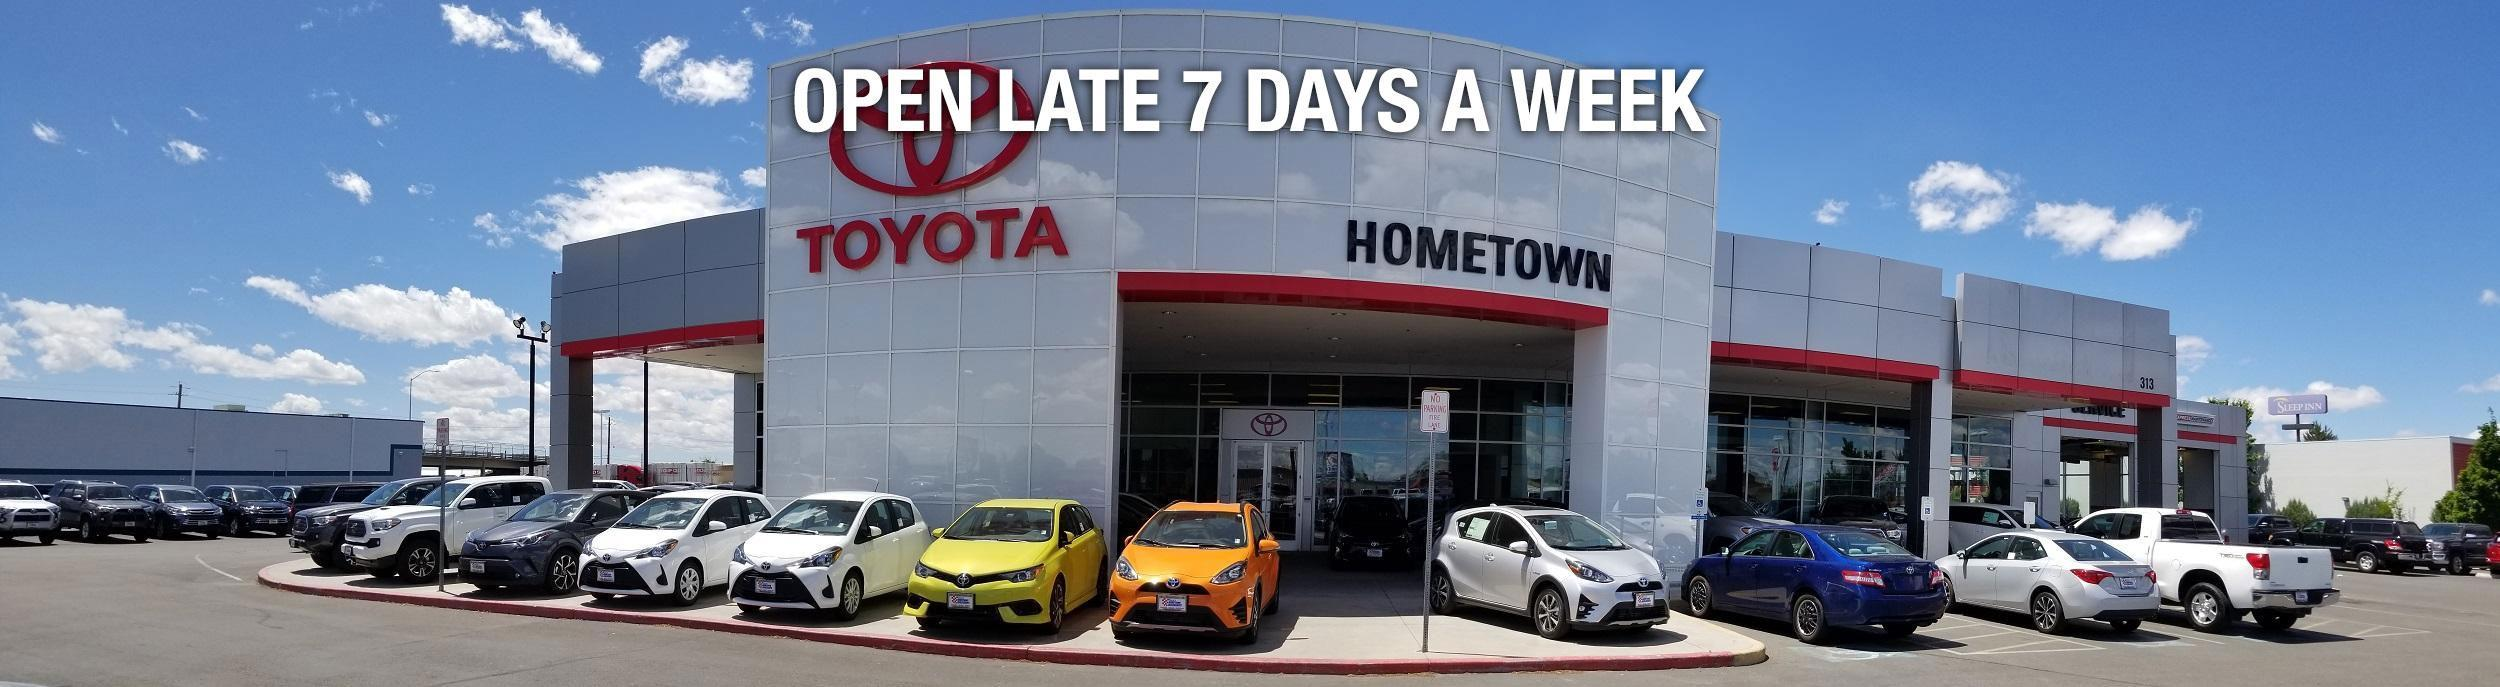 Hometown Toyota